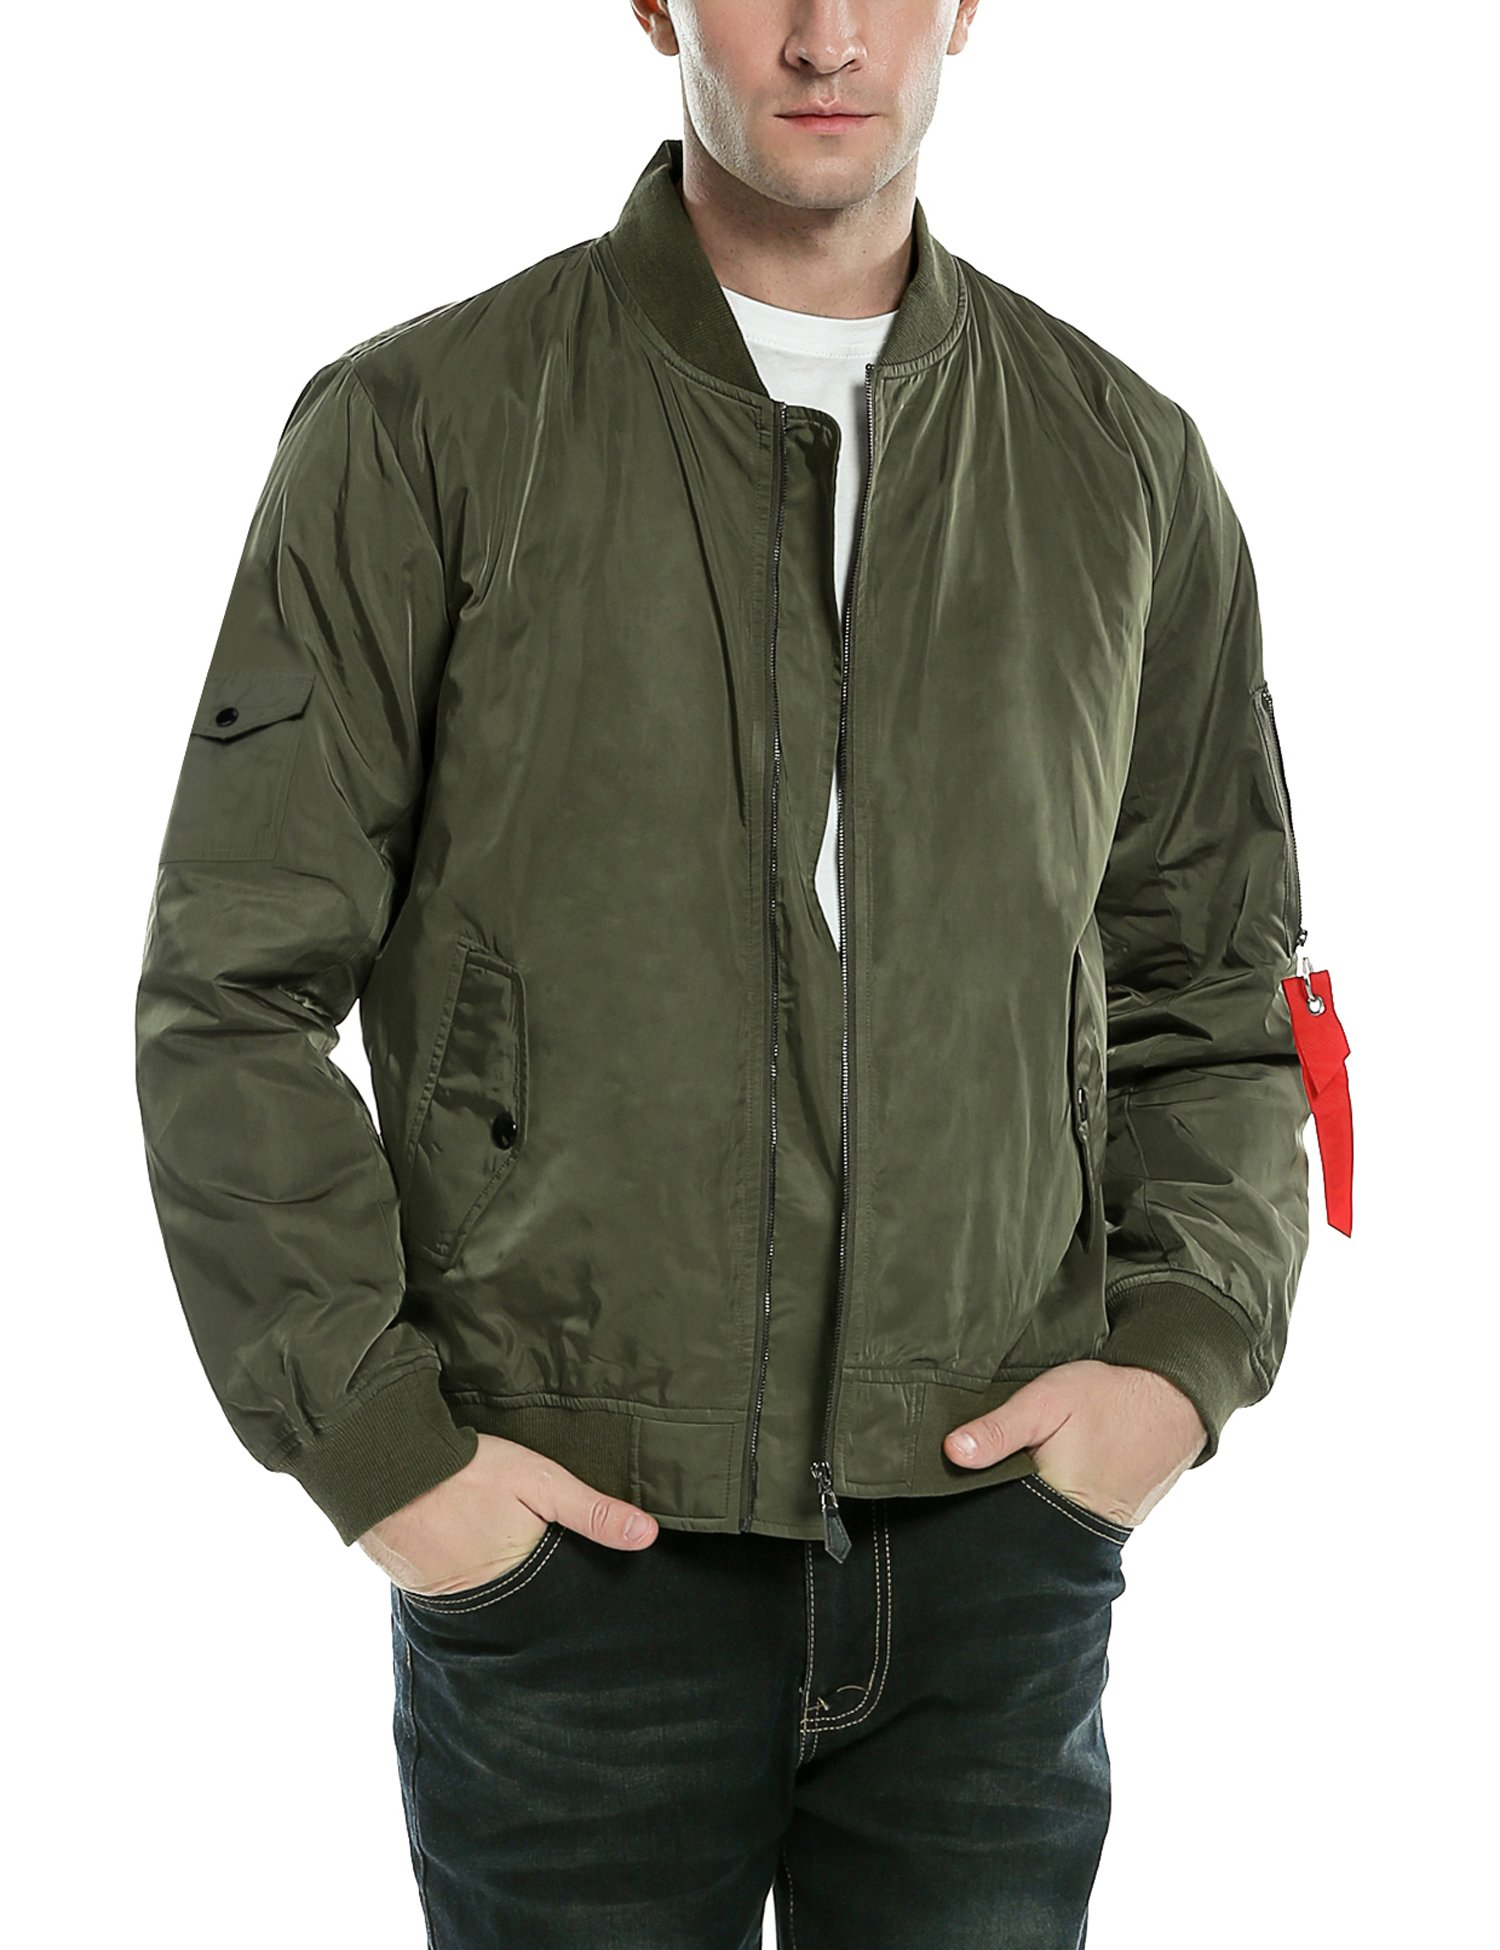 COOFAMDY Mens Flight Bomber Jacket Casual Lightweight Windbreaker Zip-Front Golf Jacket Army Green by COOFANDY